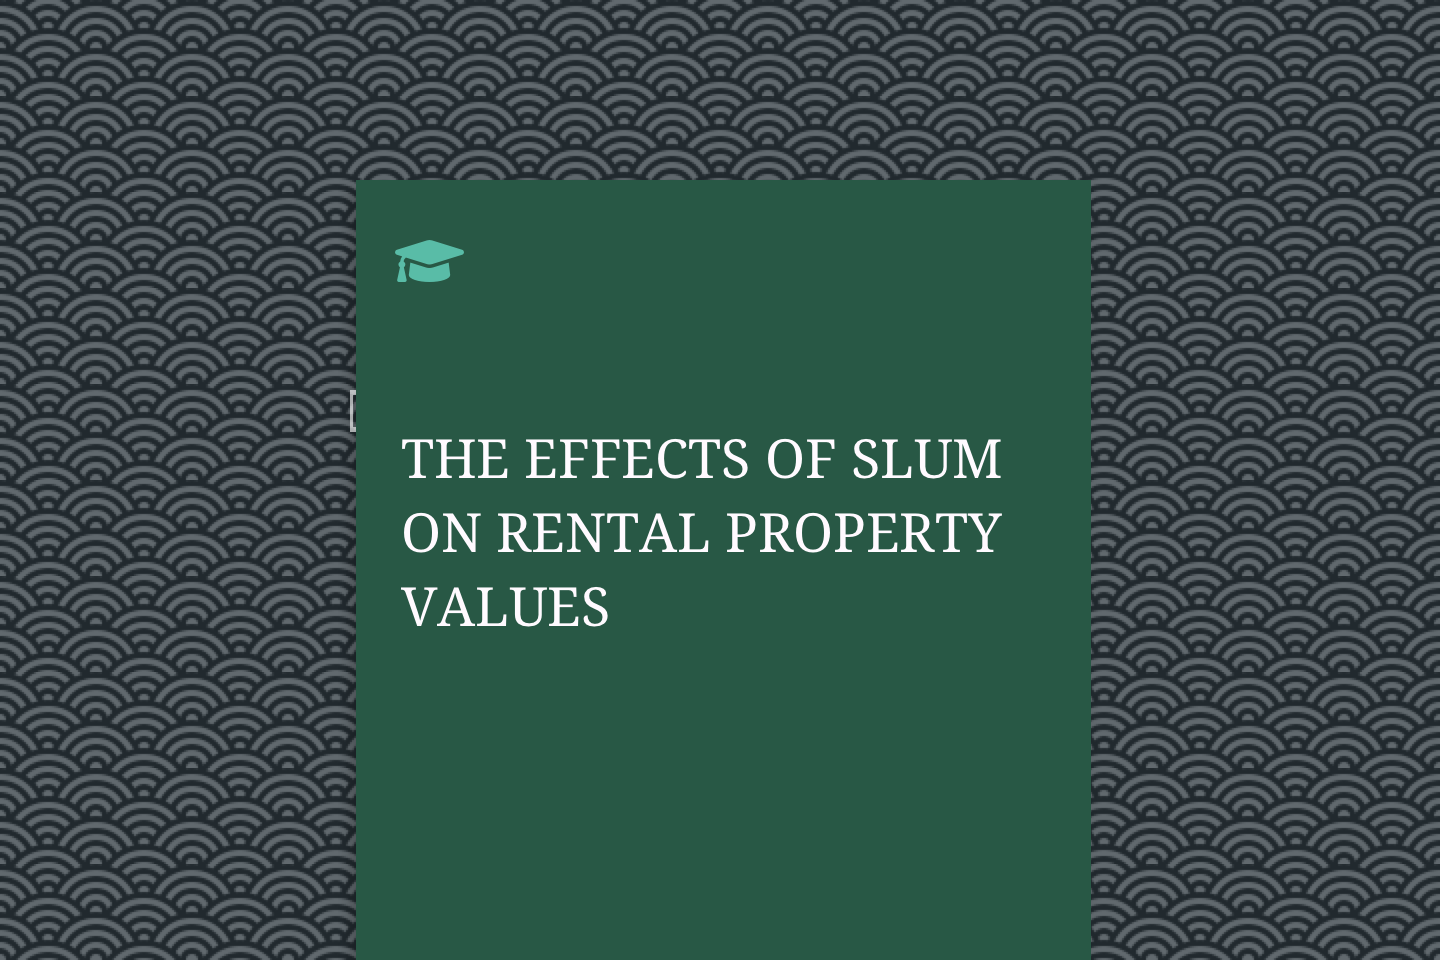 THE EFFECTS OF SLUM ON RENTAL PROPERTY VALUES